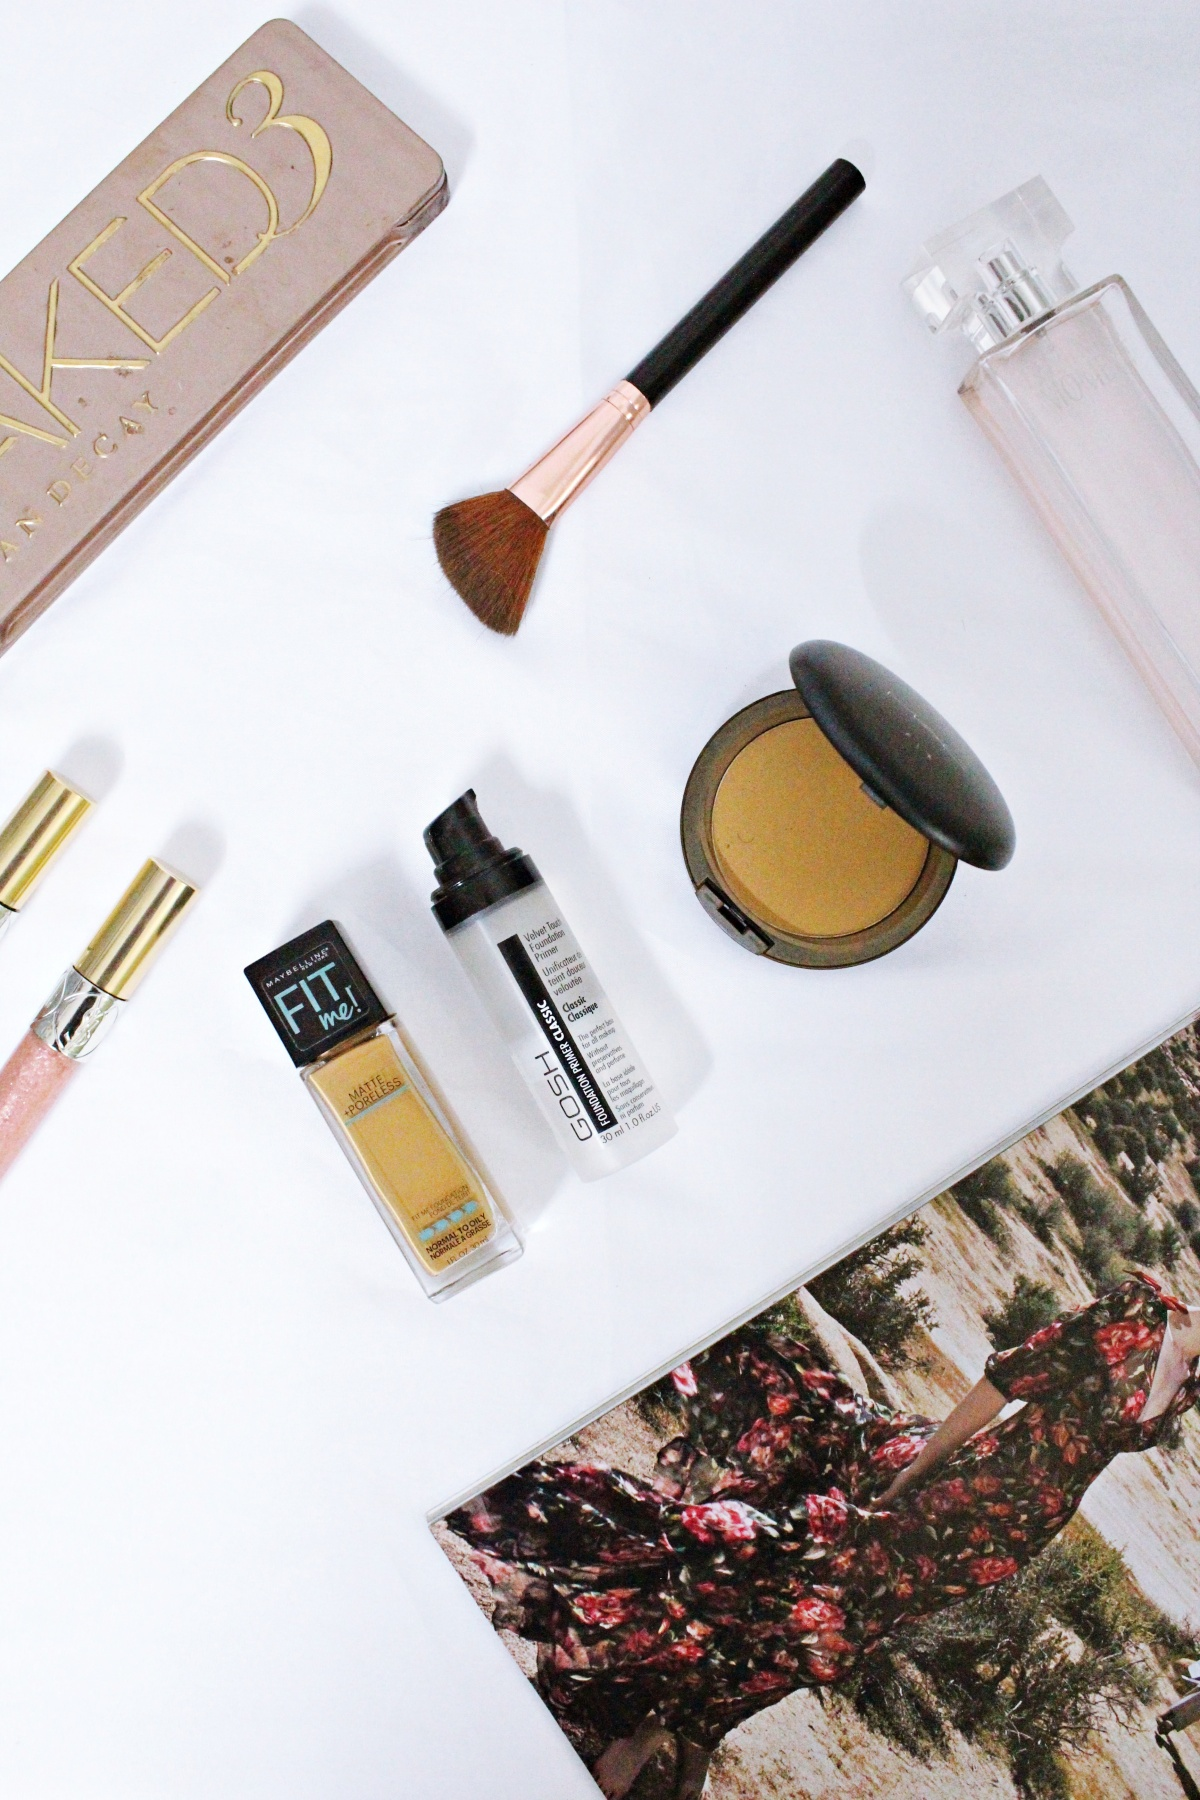 The Foundation Tip That Changed My MakeupGame